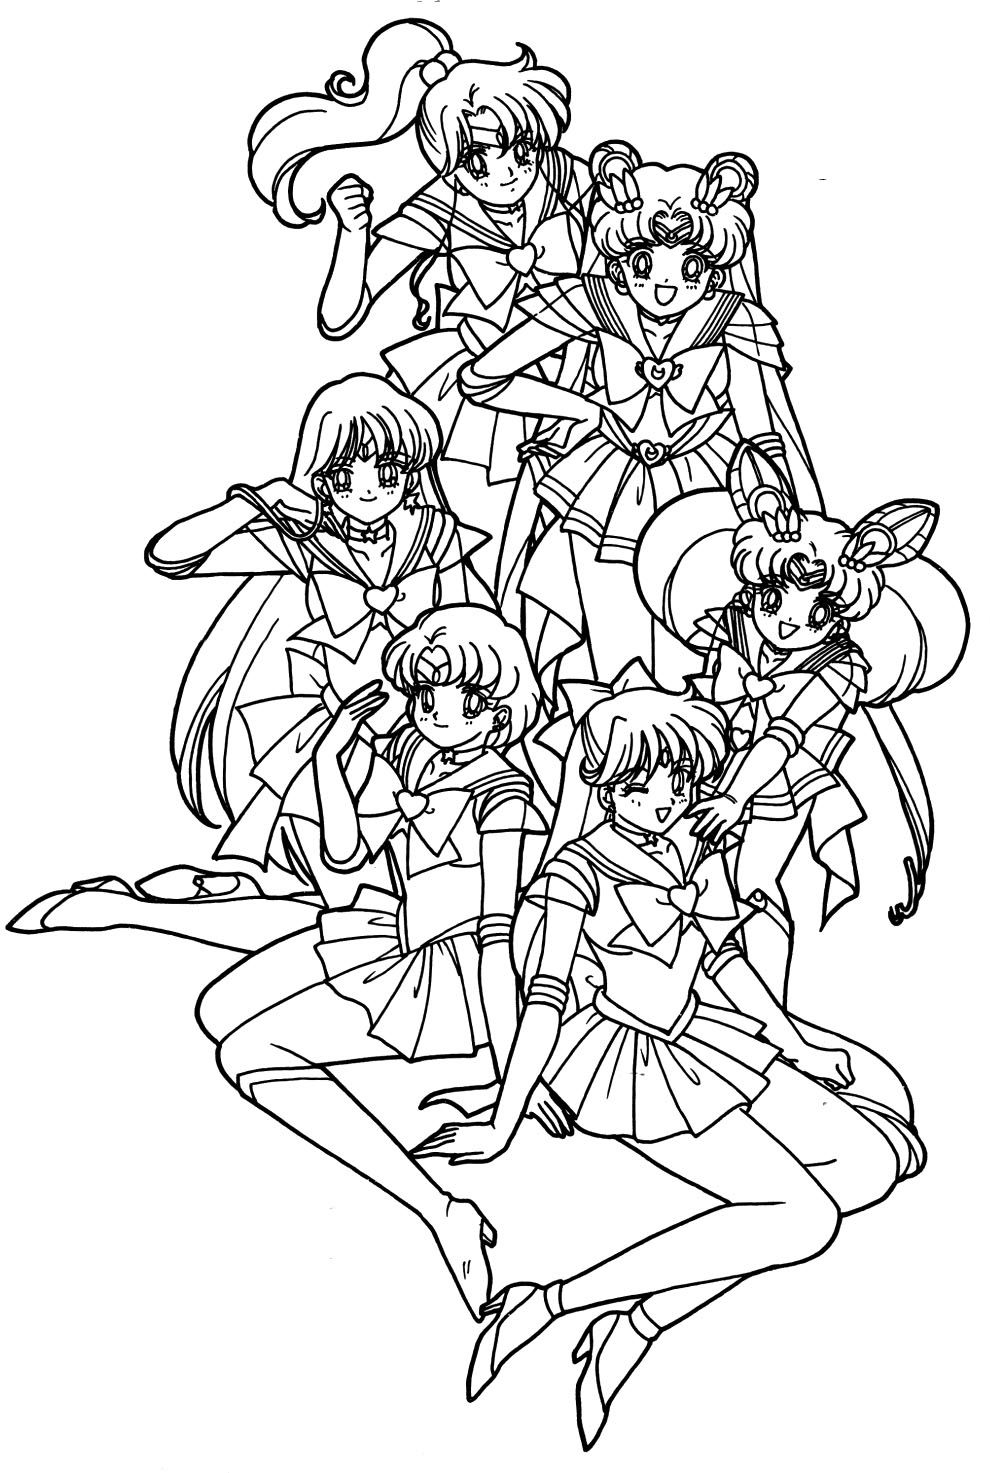 Sailor Moon Really Like With Her Friend Coloring Pages Sailor Moon Coloring Pages Moon Coloring Pages Coloring Book Pages